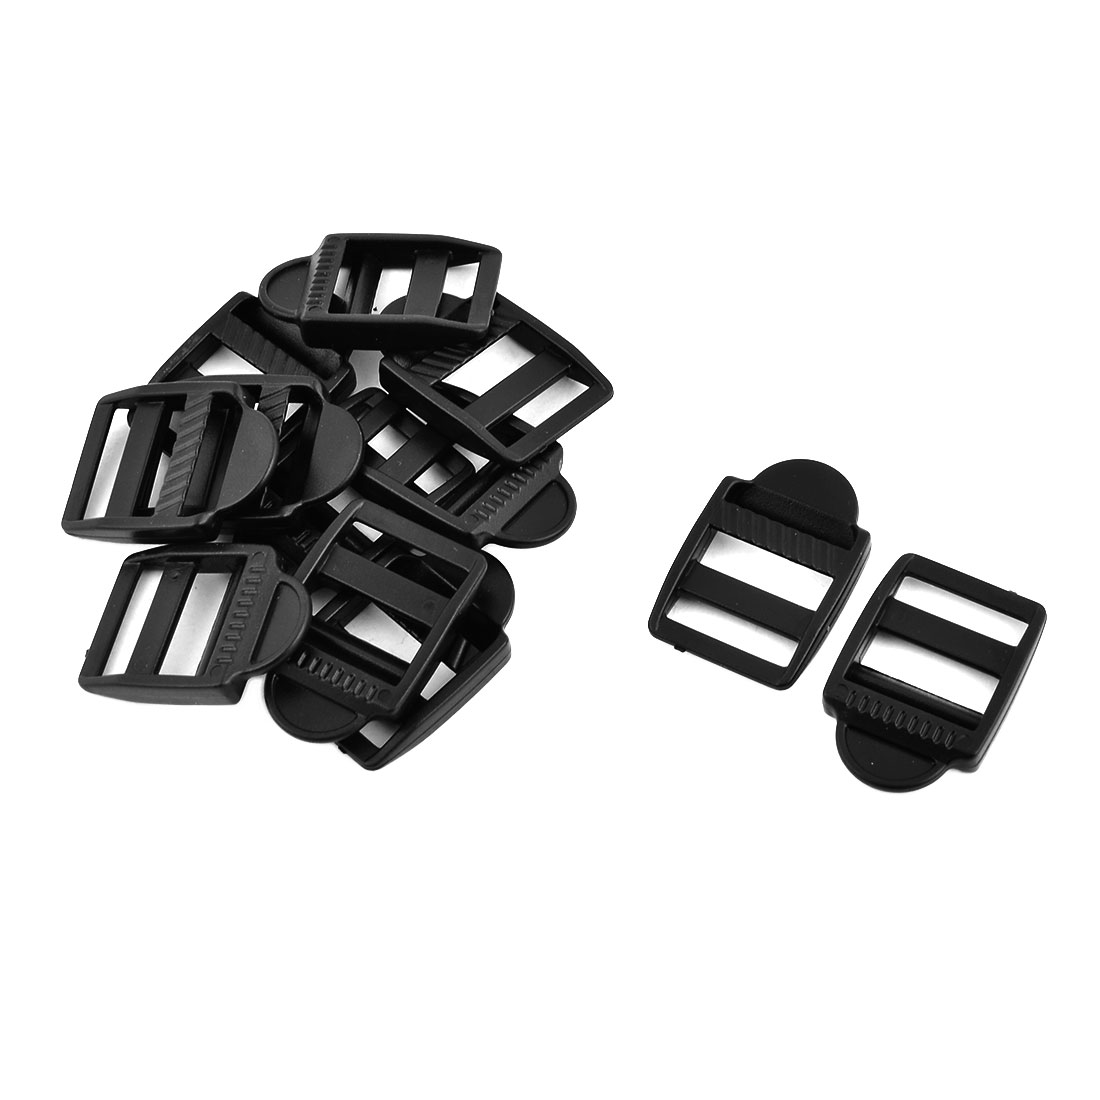 Outside Plastic Adjustable Suitcase Bag Strap Connector Ladder Lock Fastener Buckle 12pcs